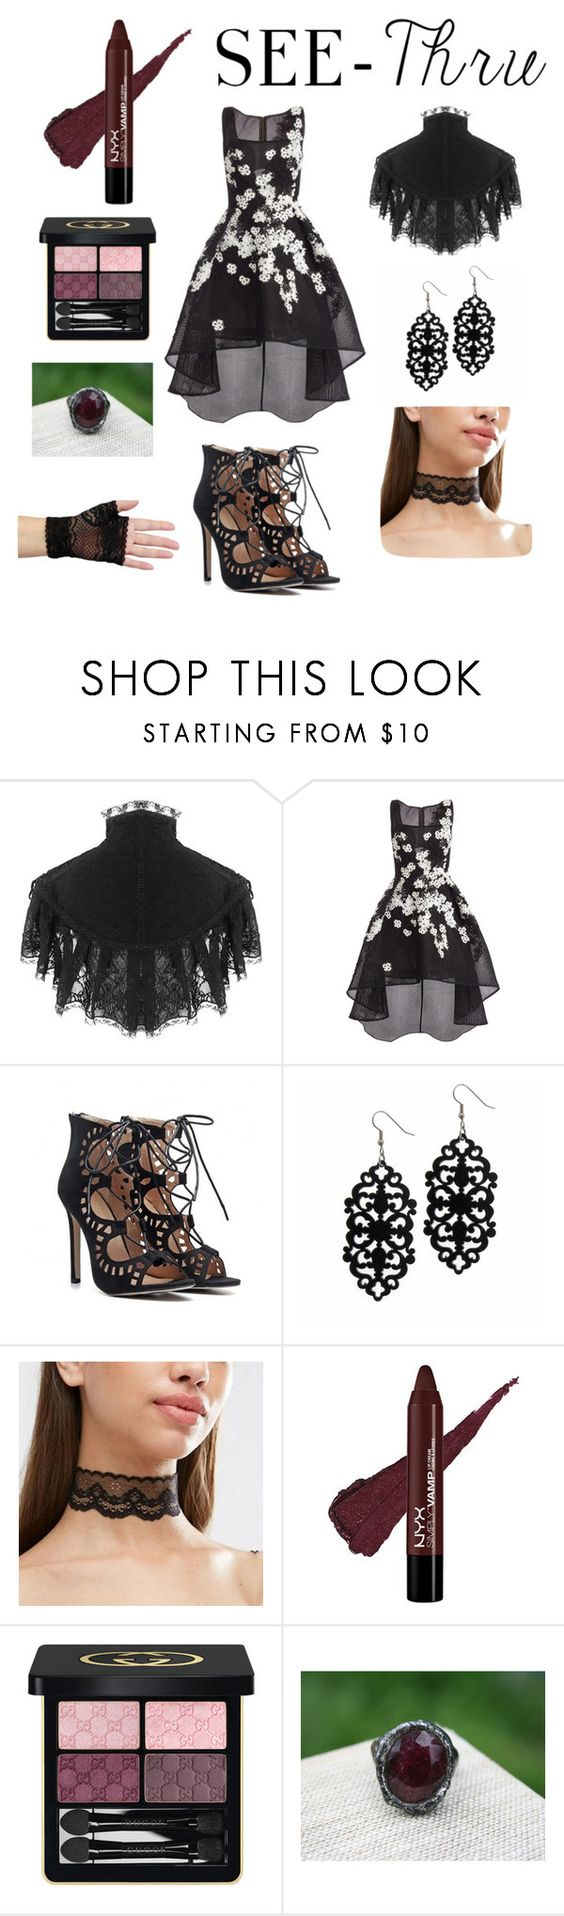 """see thru"" by jokerkat on Polyvore featuring Jovani, Gucci, clear and Seethru"